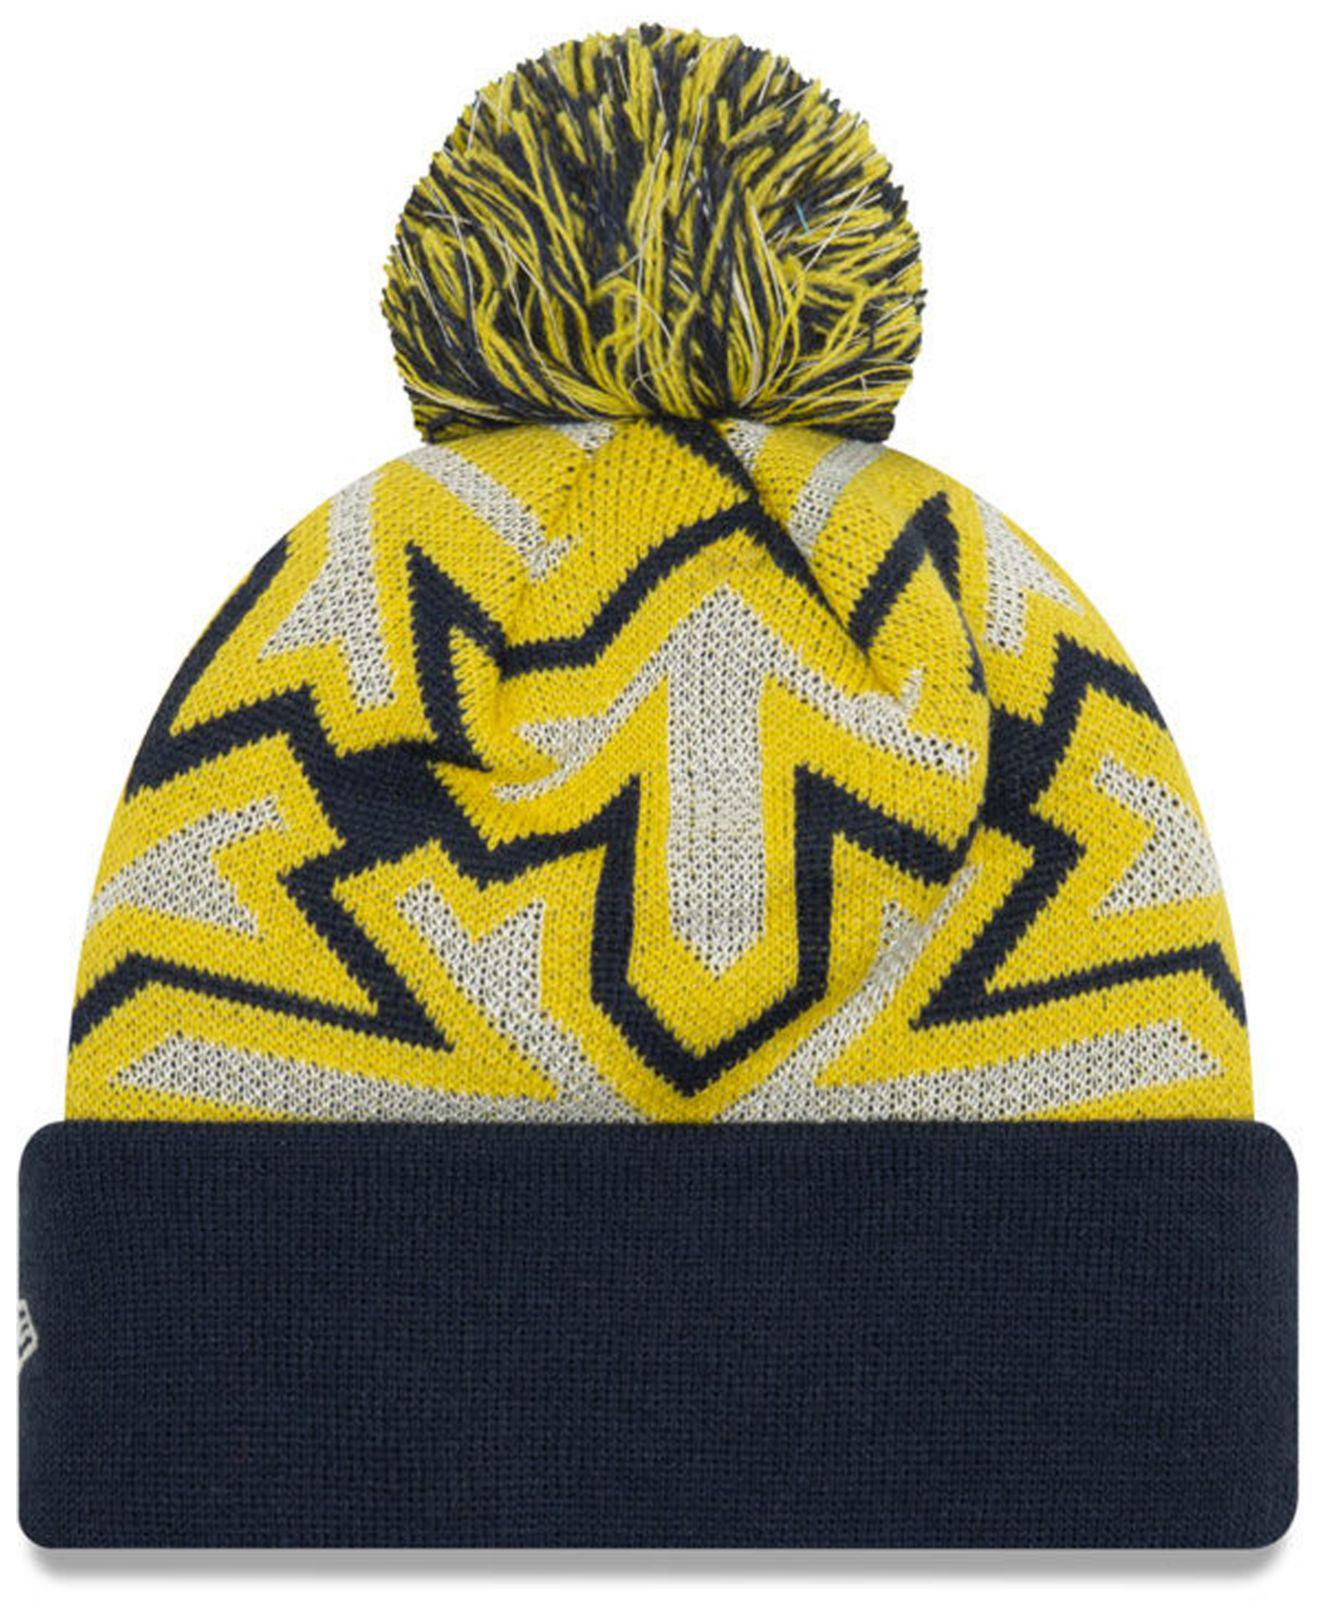 pretty nice 5690c d85fa ... italy lyst ktz indiana pacers glowflake cuff knit hat in yellow 68250  16593